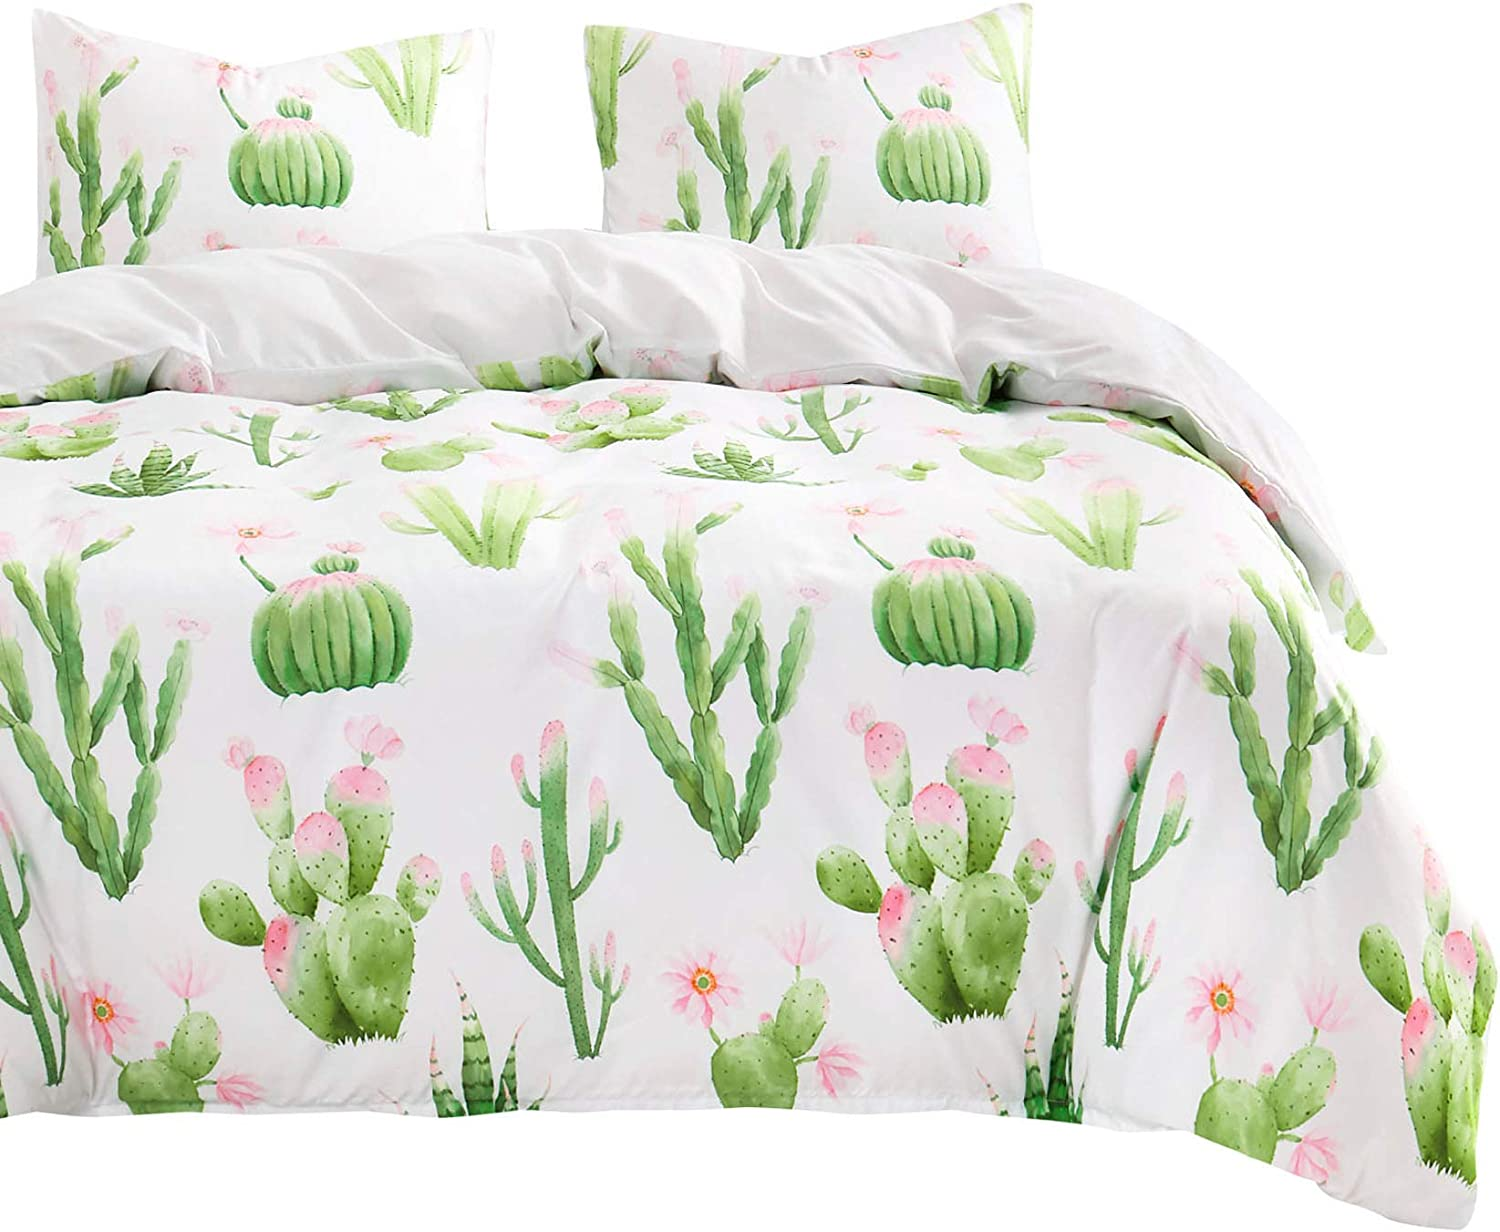 Wake In Cloud - Cactus Comforter Flo Green Pink Set New Free Outlet ☆ Free Shipping Shipping with